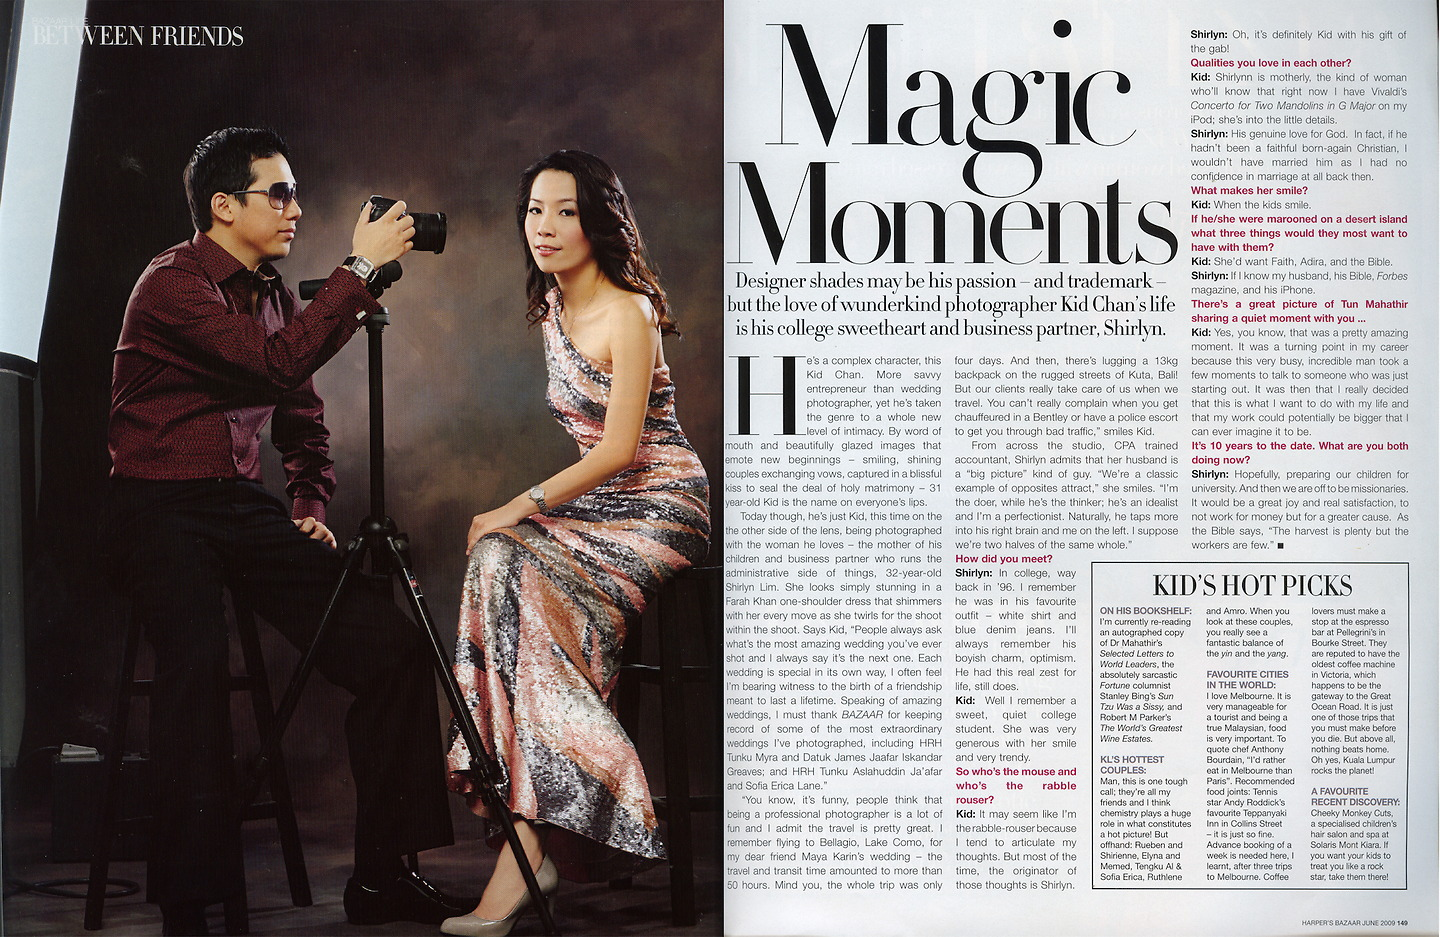 Harper's Bazaar: Magic Moments